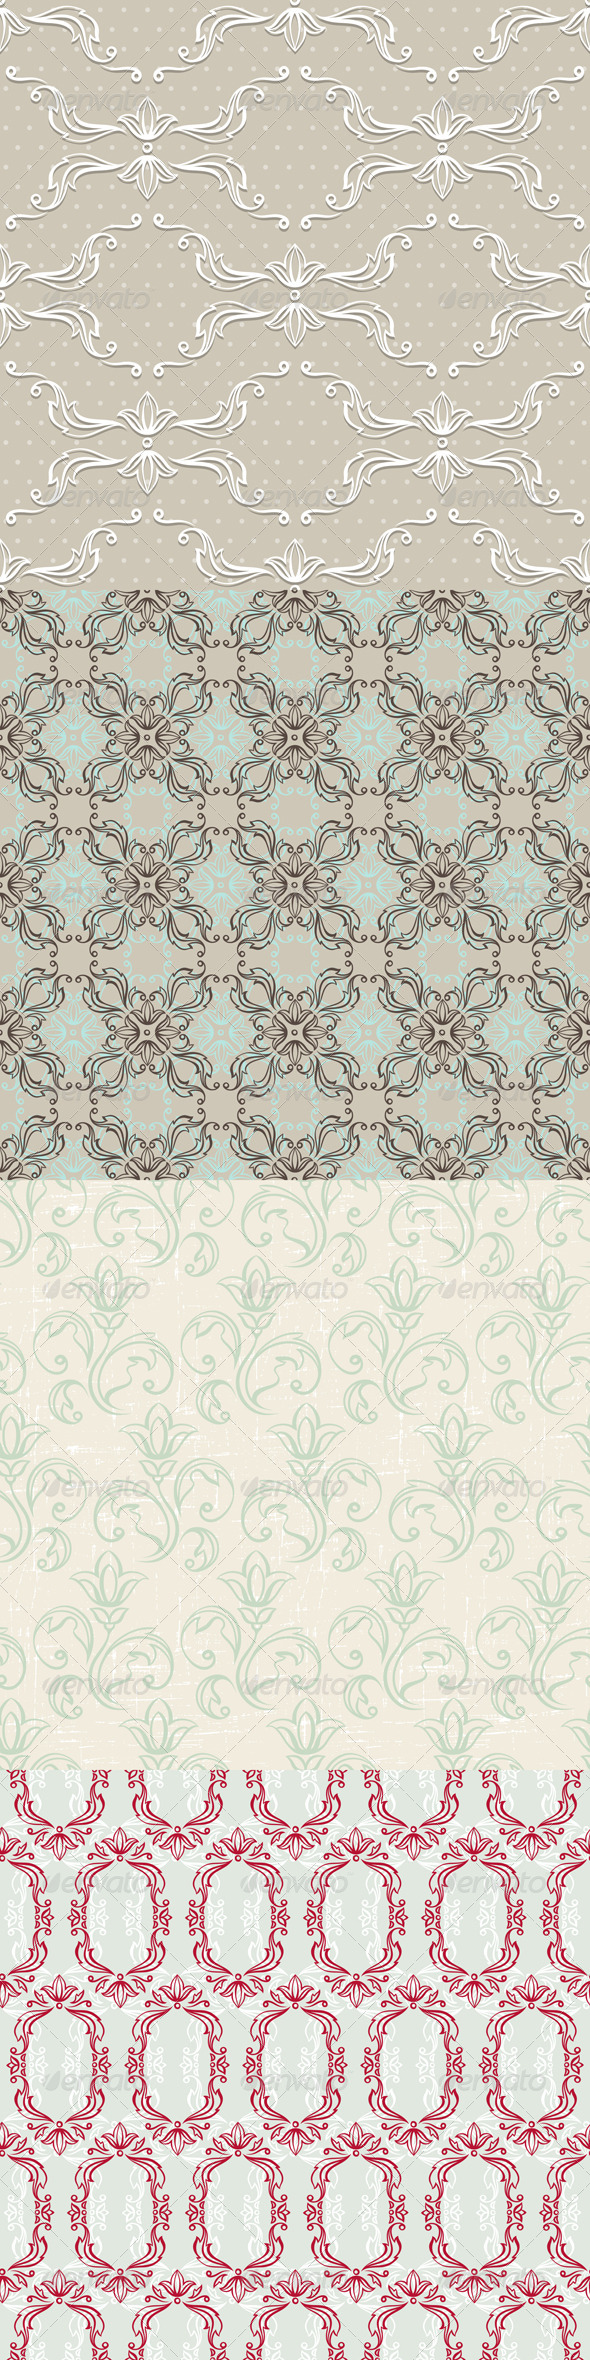 GraphicRiver Seamless Vintage Wallpapers Floral Patterns 4605231